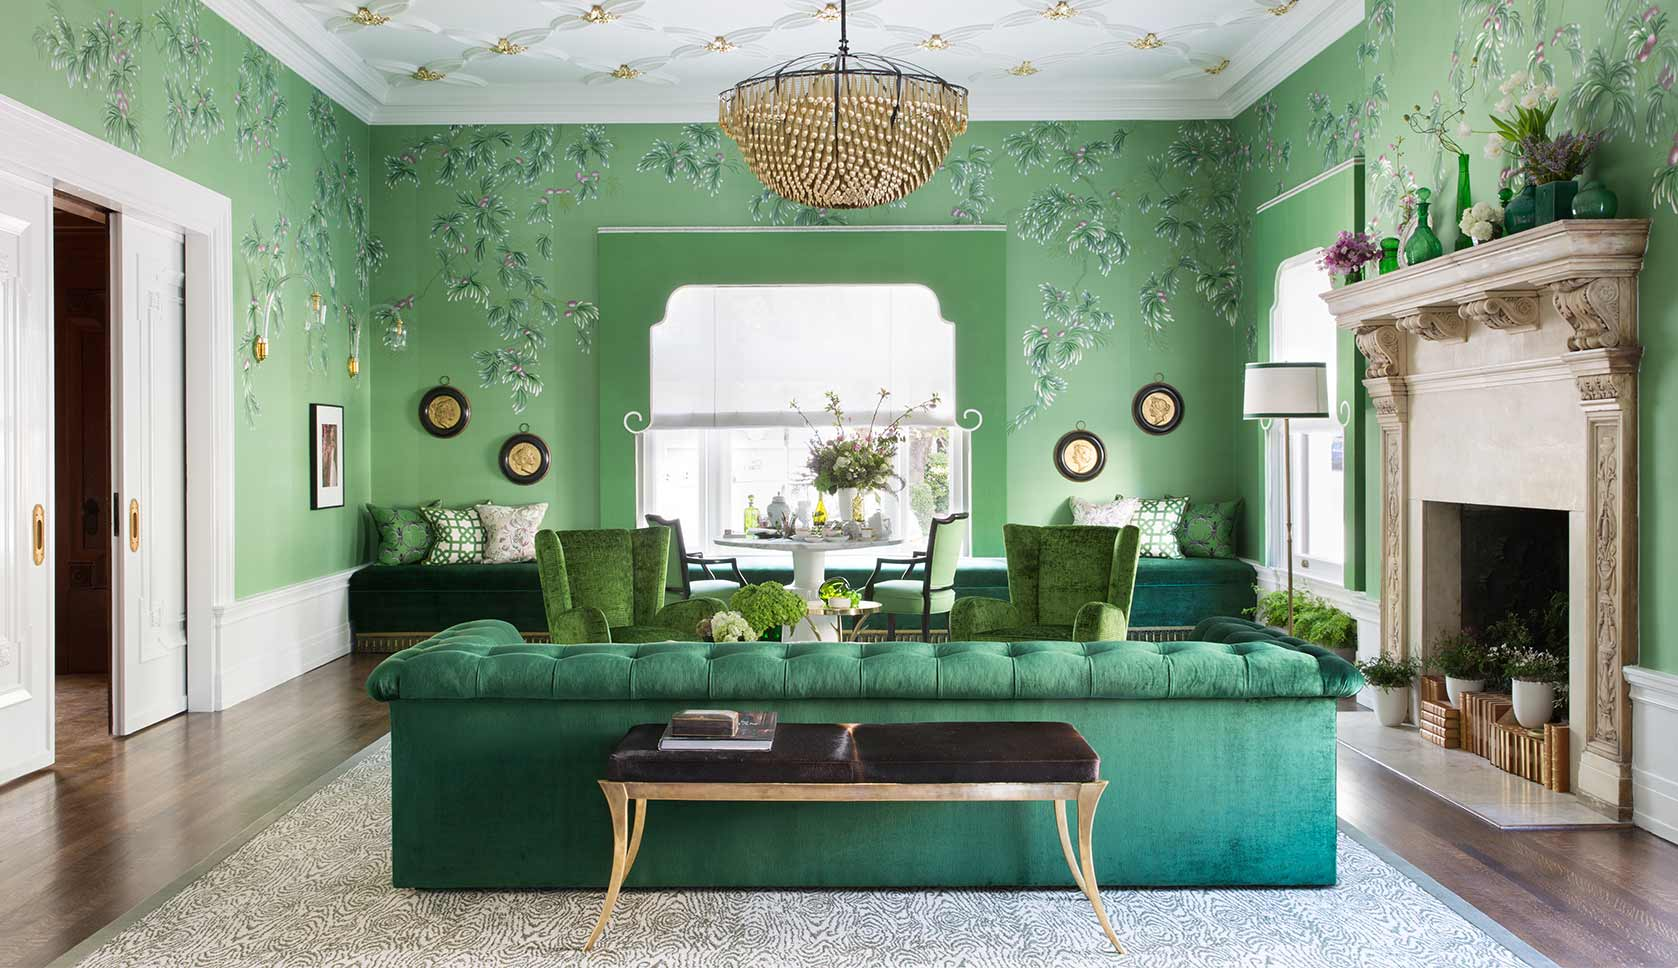 Rue Your Pathway To Stylish Living - Home interior designer